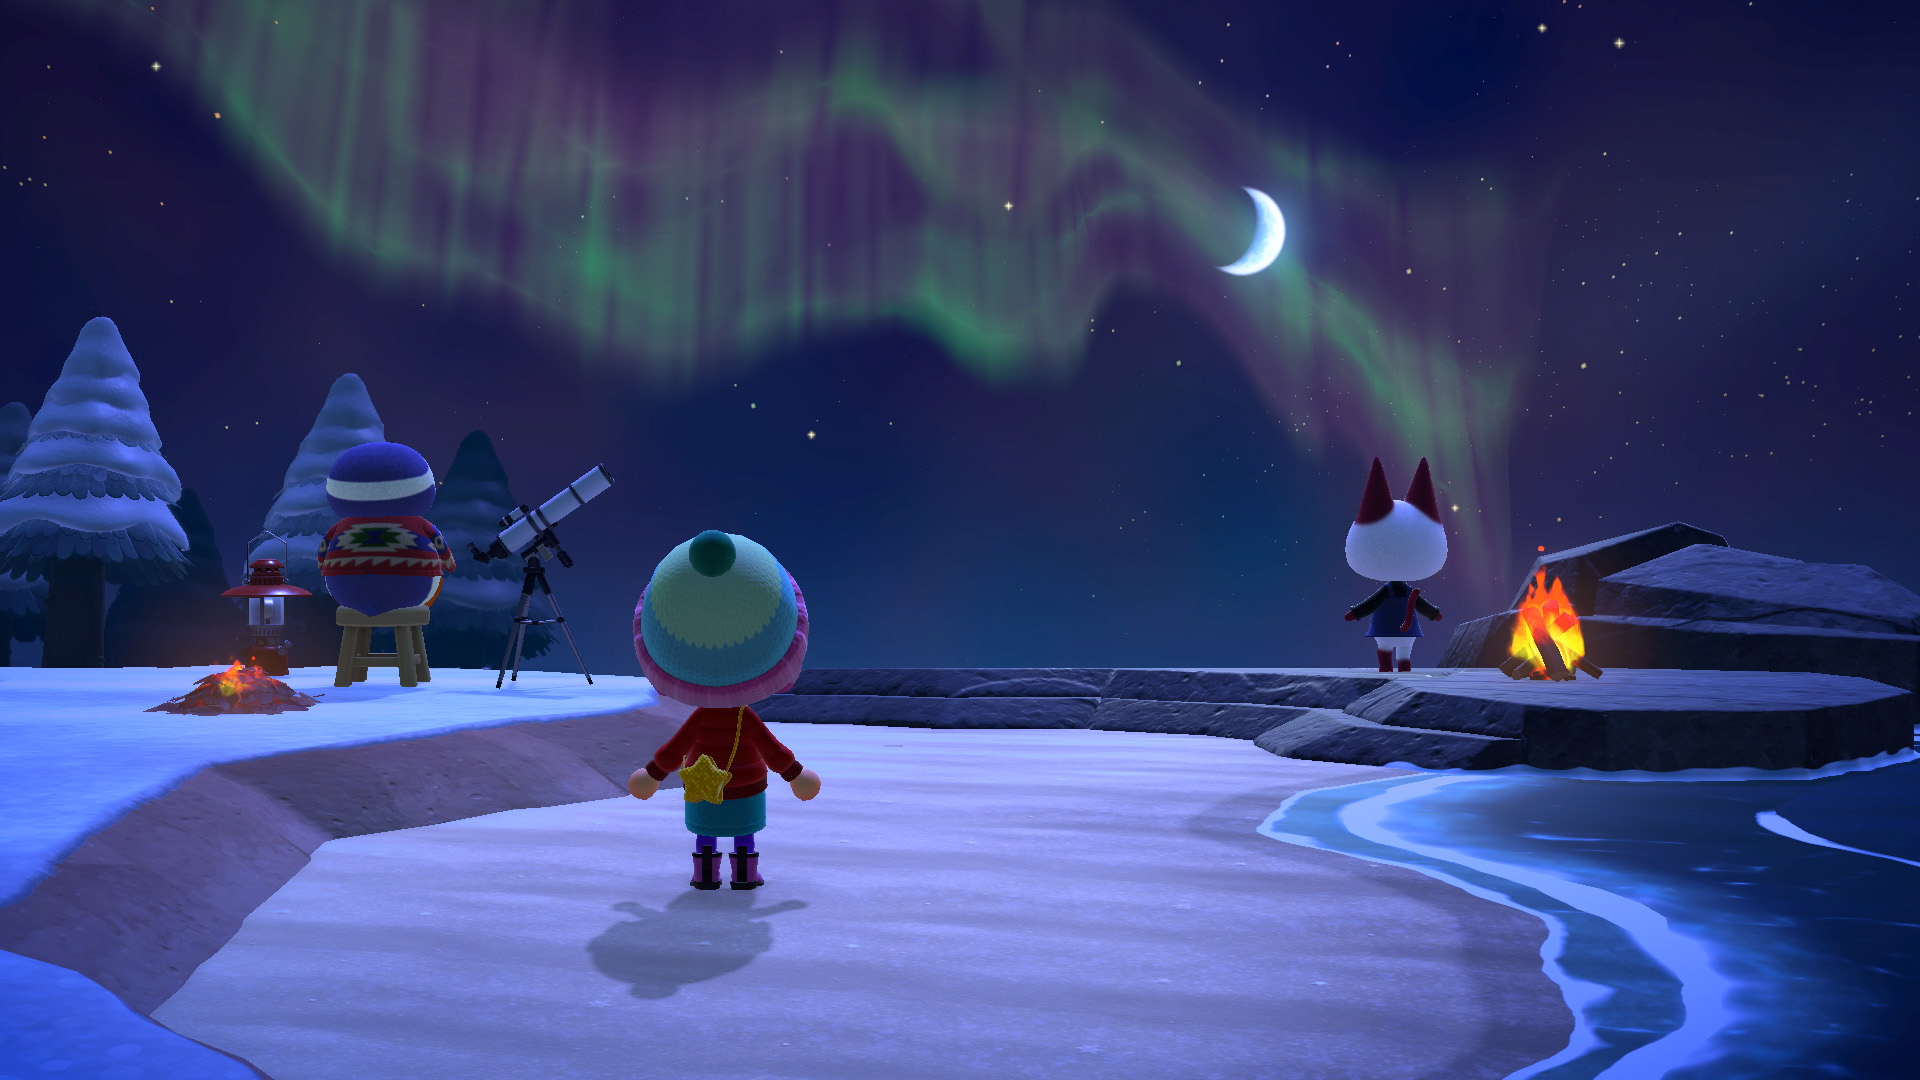 Animal Crossing: New Horizons in December: Fish, Toy Day & Gifts - this is new